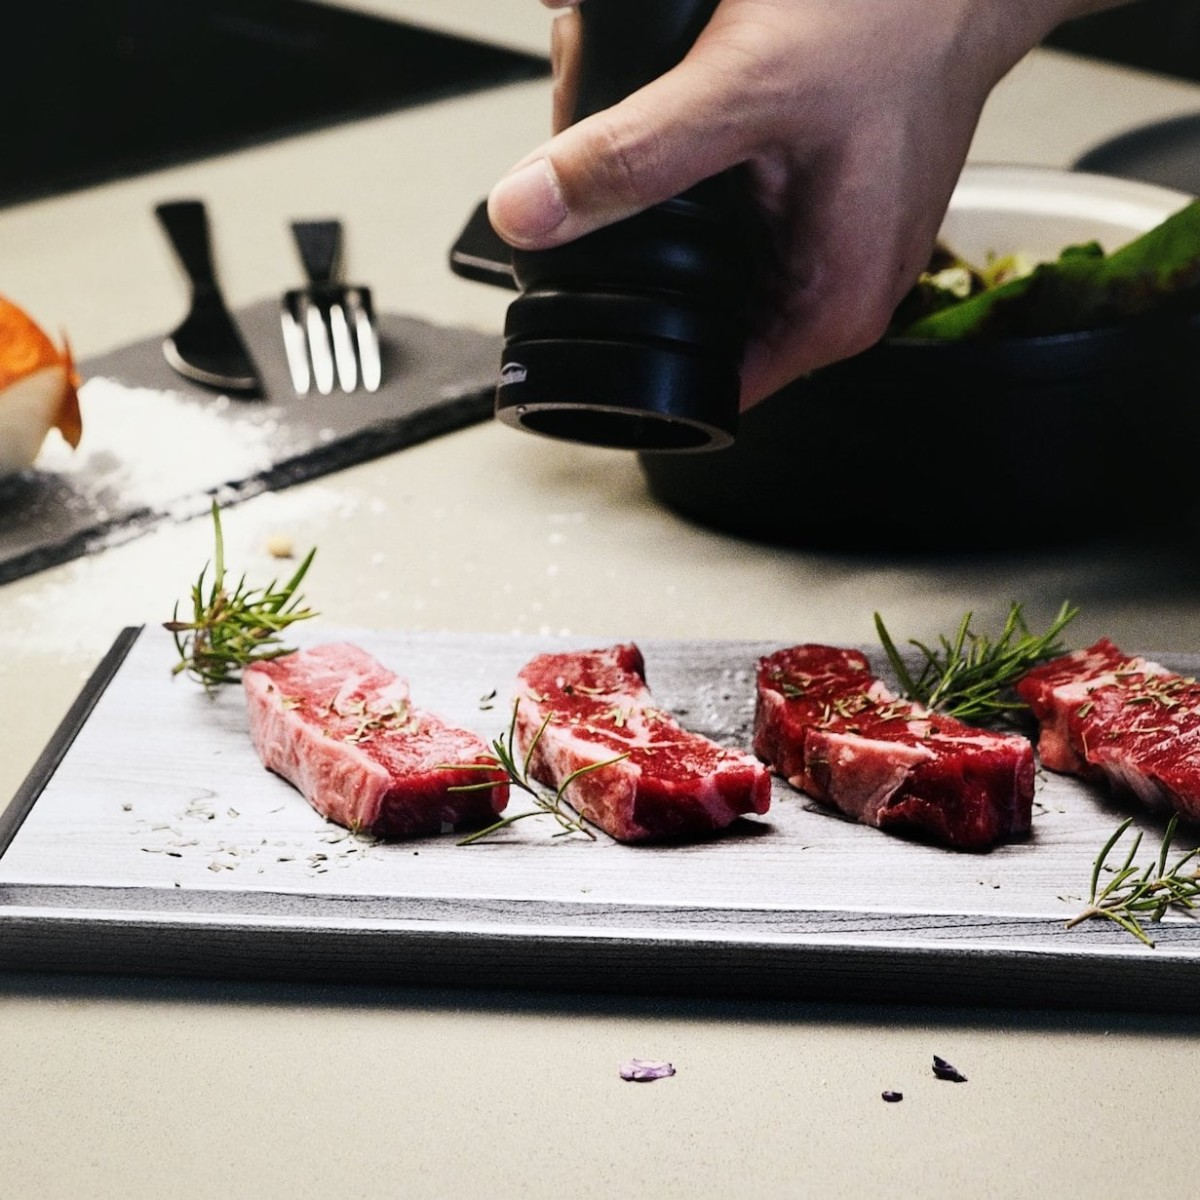 THAWTHAT! DELUXE Thawing Tray quickly defrosts meat while preserving flavors